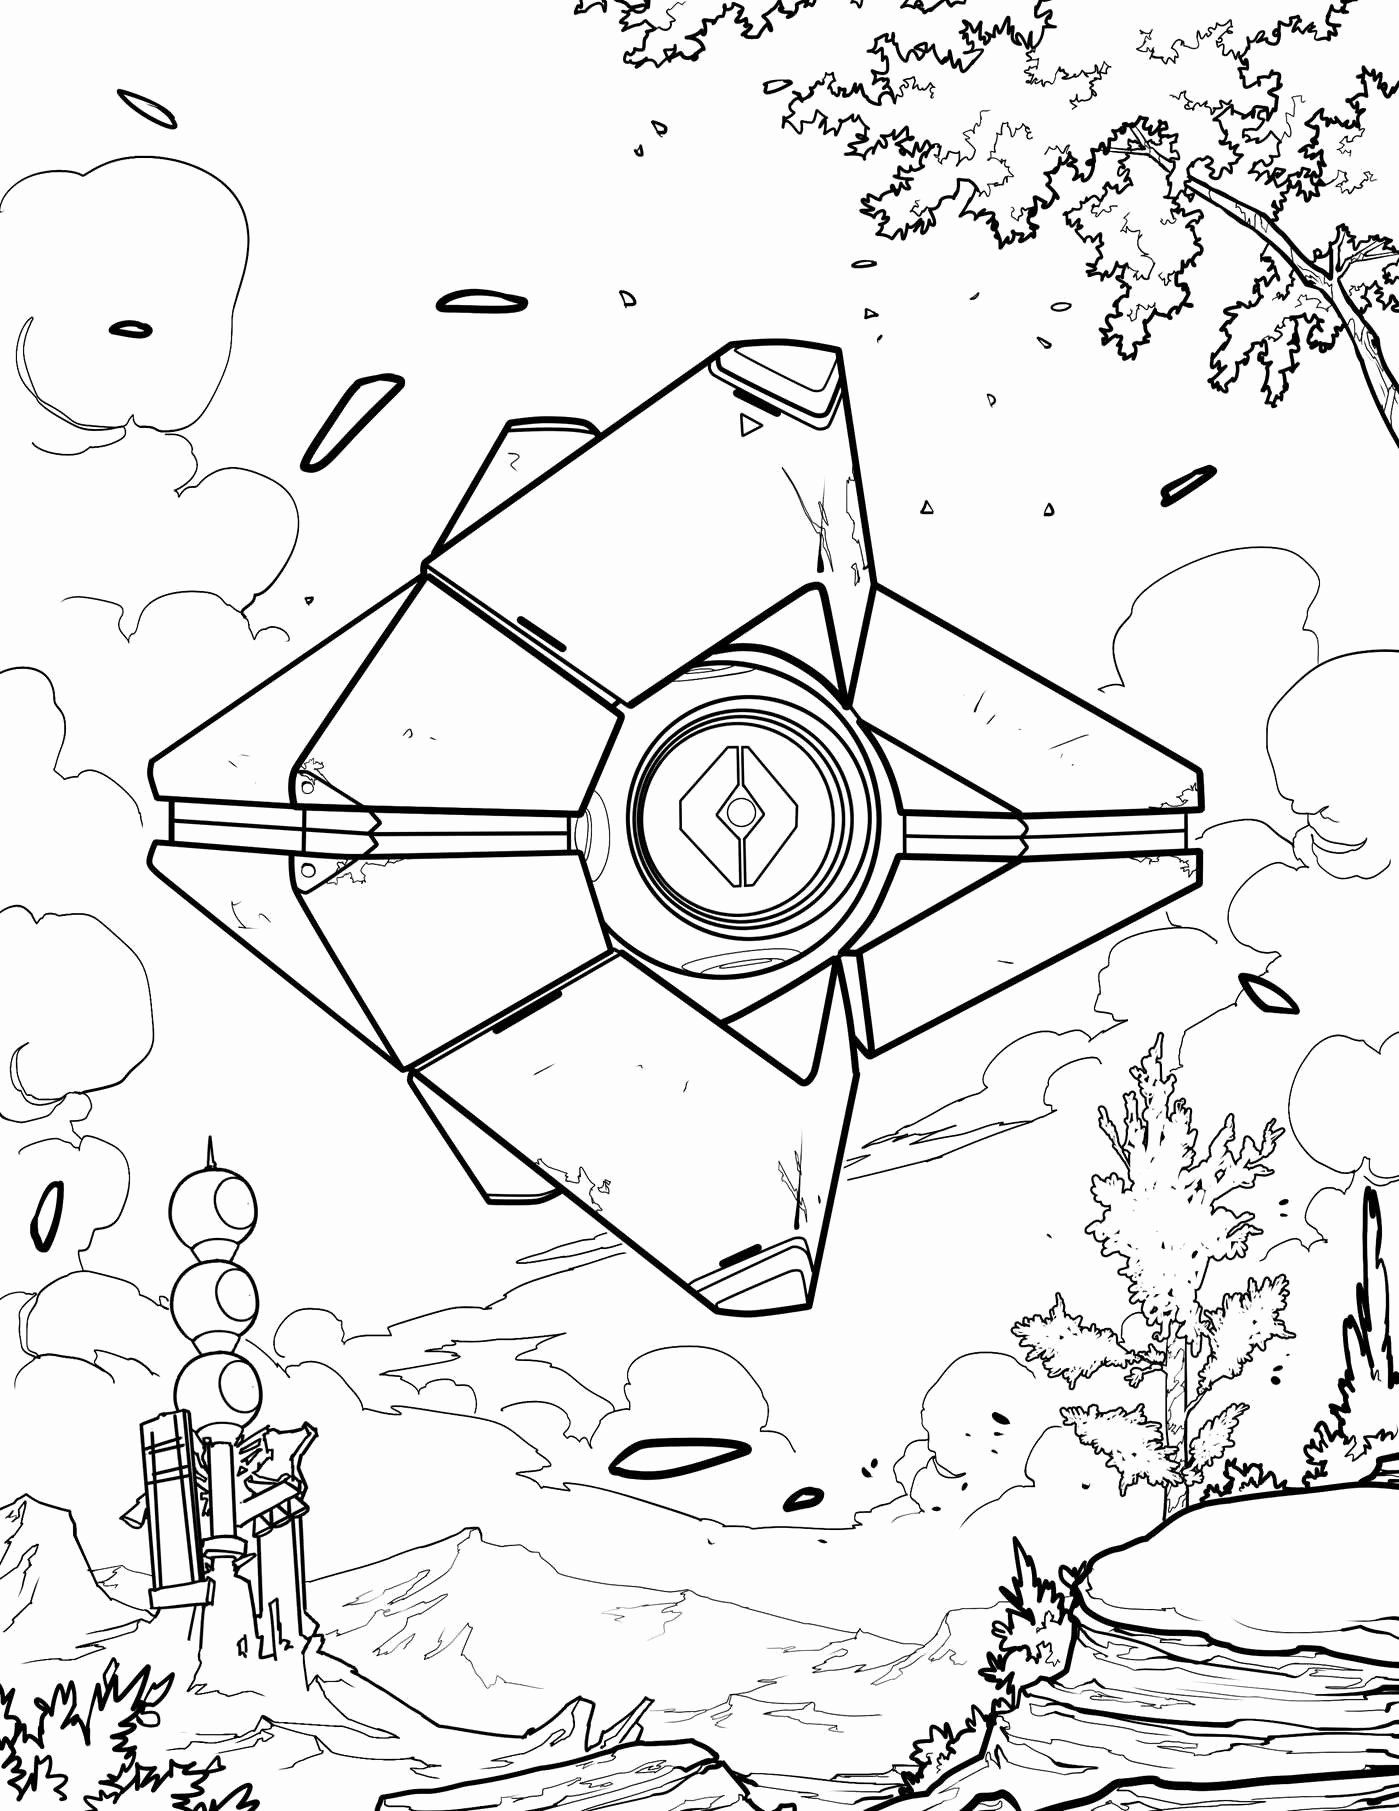 Video Game Coloring Pages New Destiny The Ficial Coloring Book Star Wars Coloring Book Destiny Game Coloring Pages